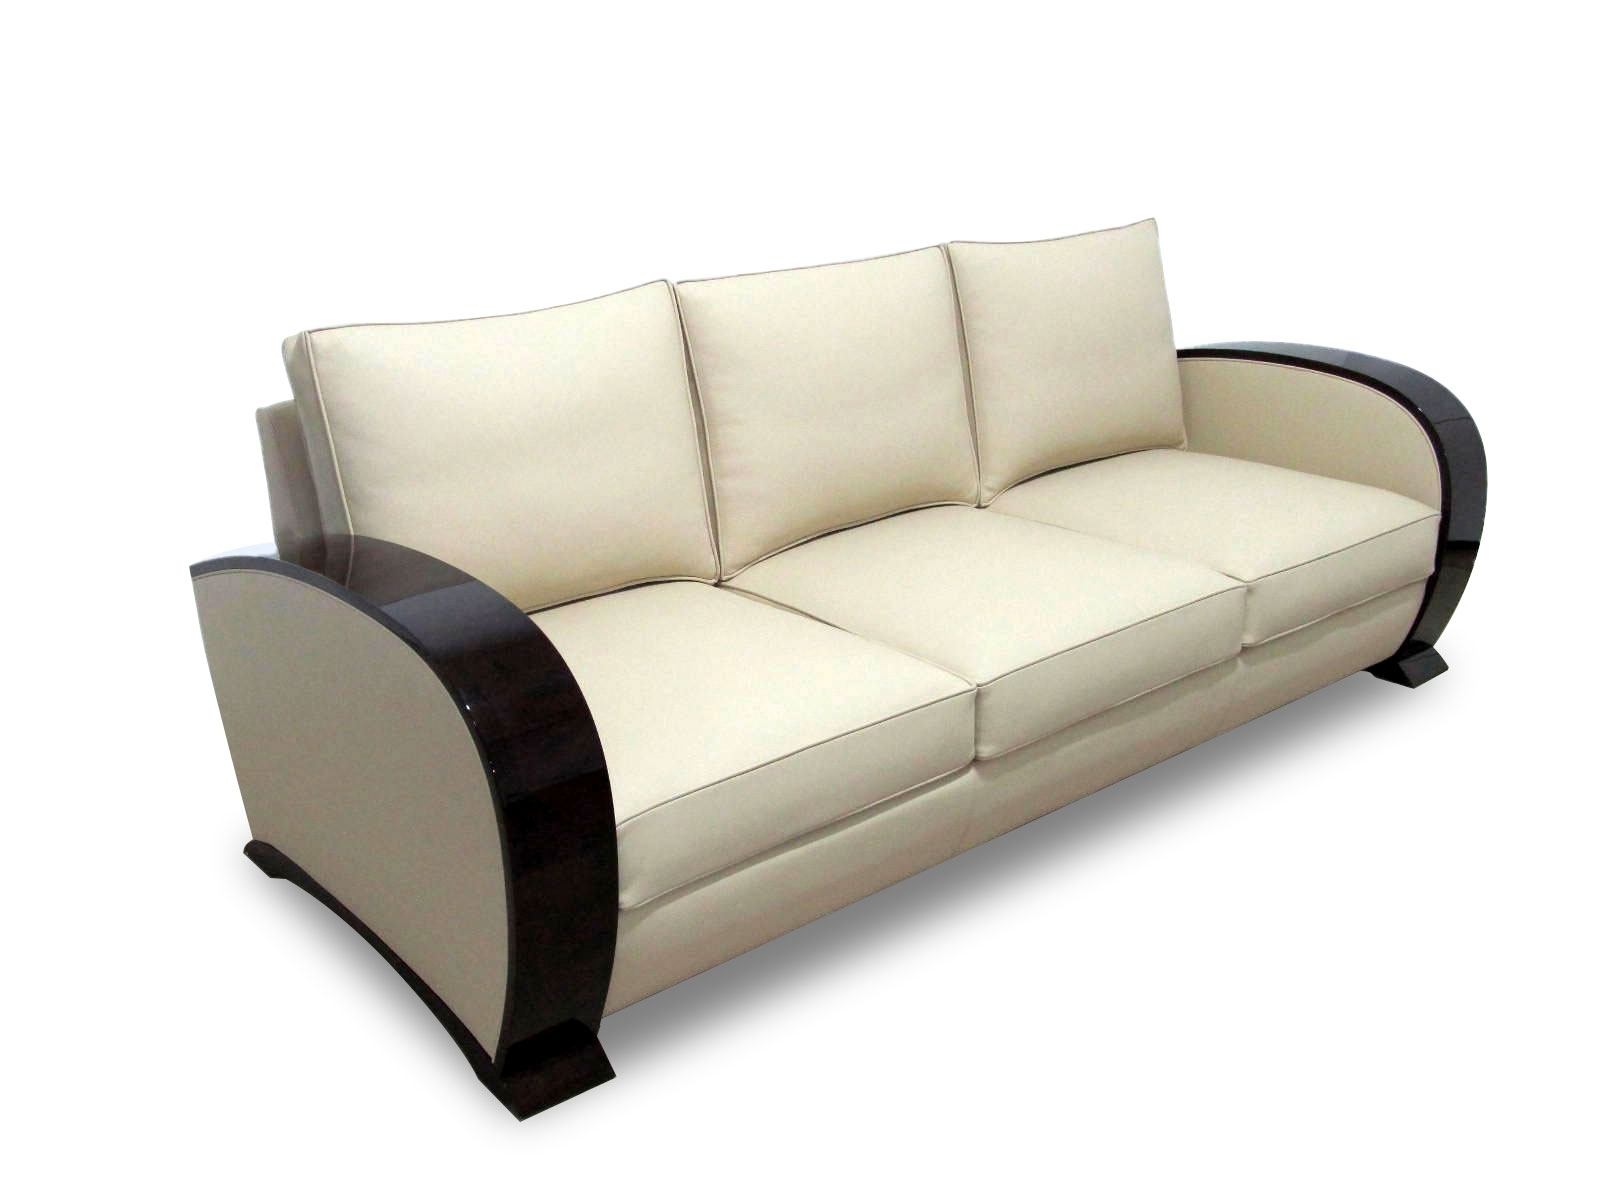 Art Deco Sofas Pertaining To Widely Used Art Deco Furniture – Hifigeny Custom Furniture (View 8 of 20)